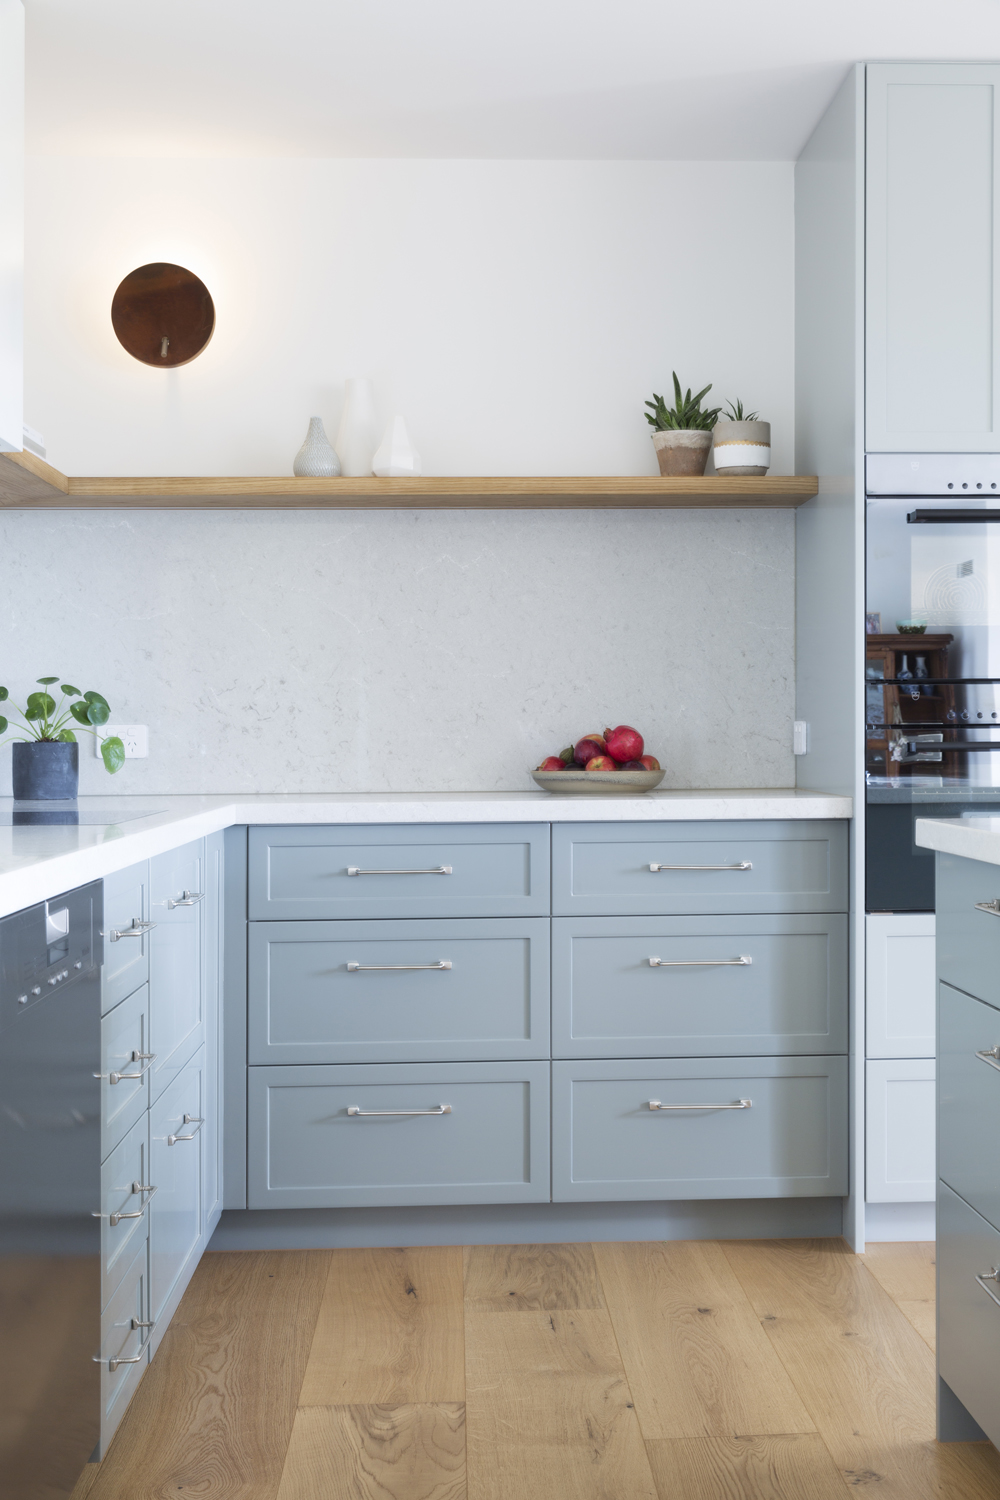 Country and contemporary kitchen design by kitchen designer Meredith Lee. Interior design, decoration and styling by Meredith Lee